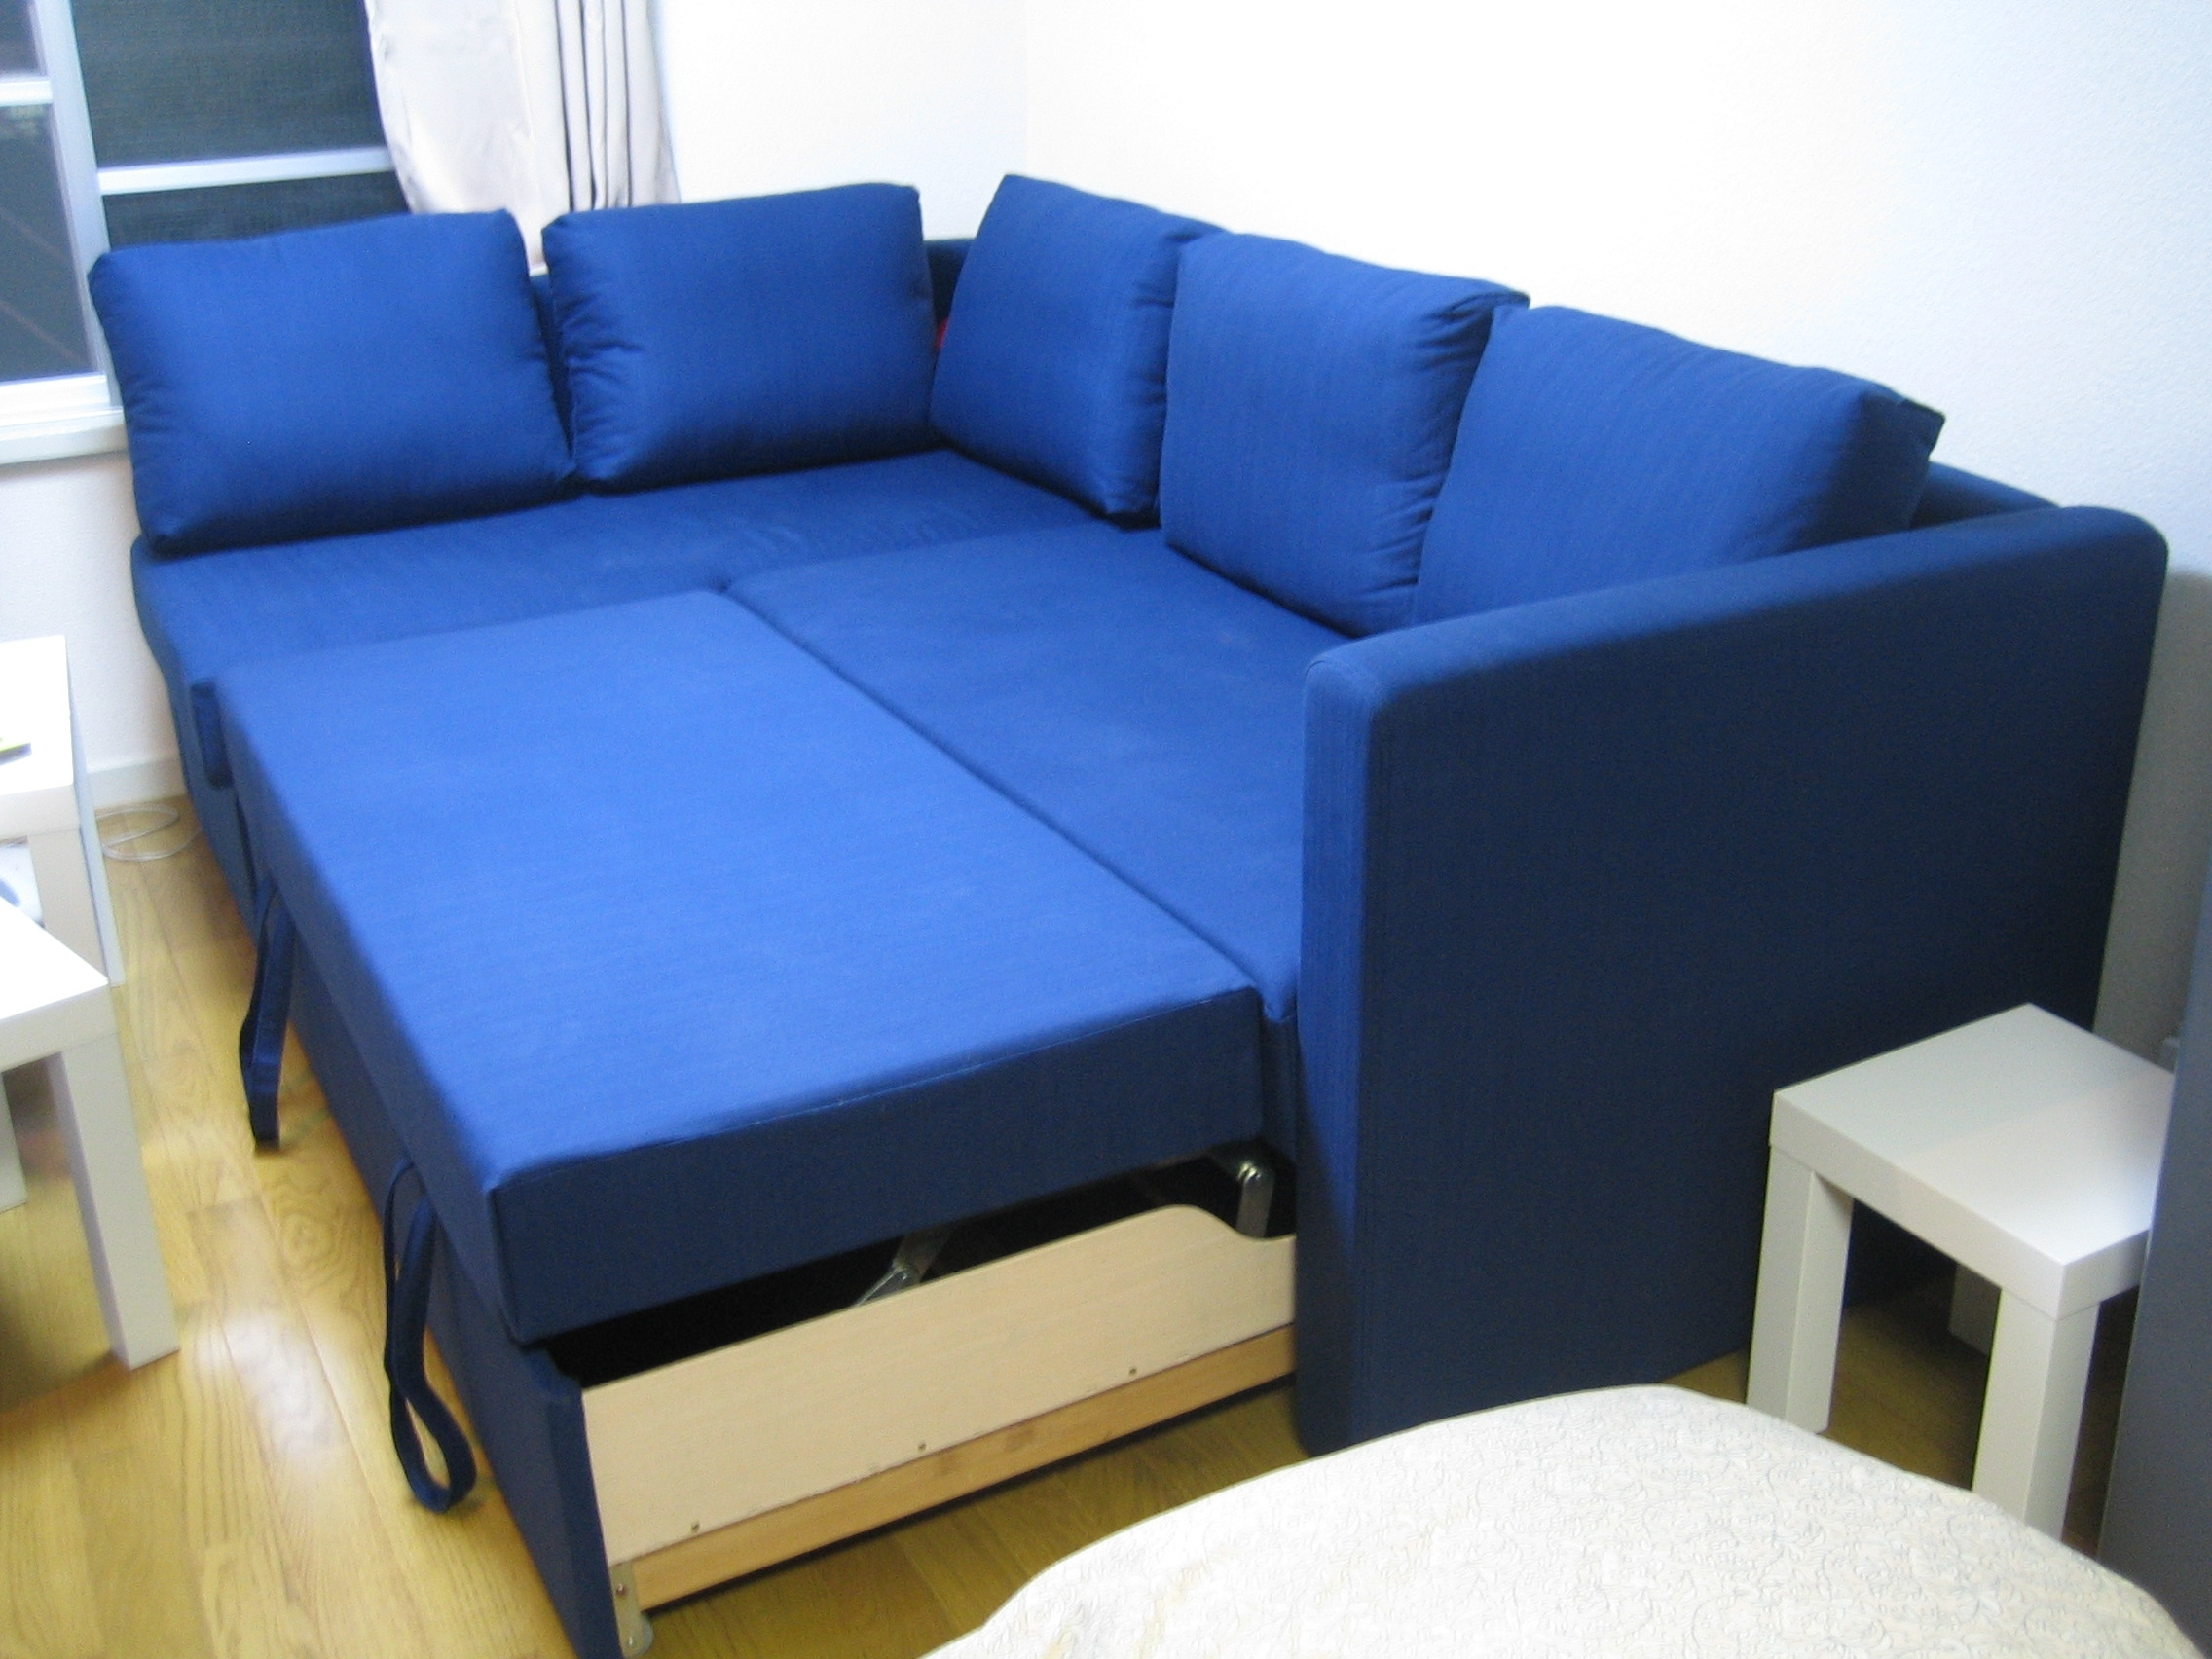 Beautiful Sectional Sofa Bed Ikea 28 For Living Room Sofa Ideas With In Ikea Sectional Sofa Beds (View 8 of 10)